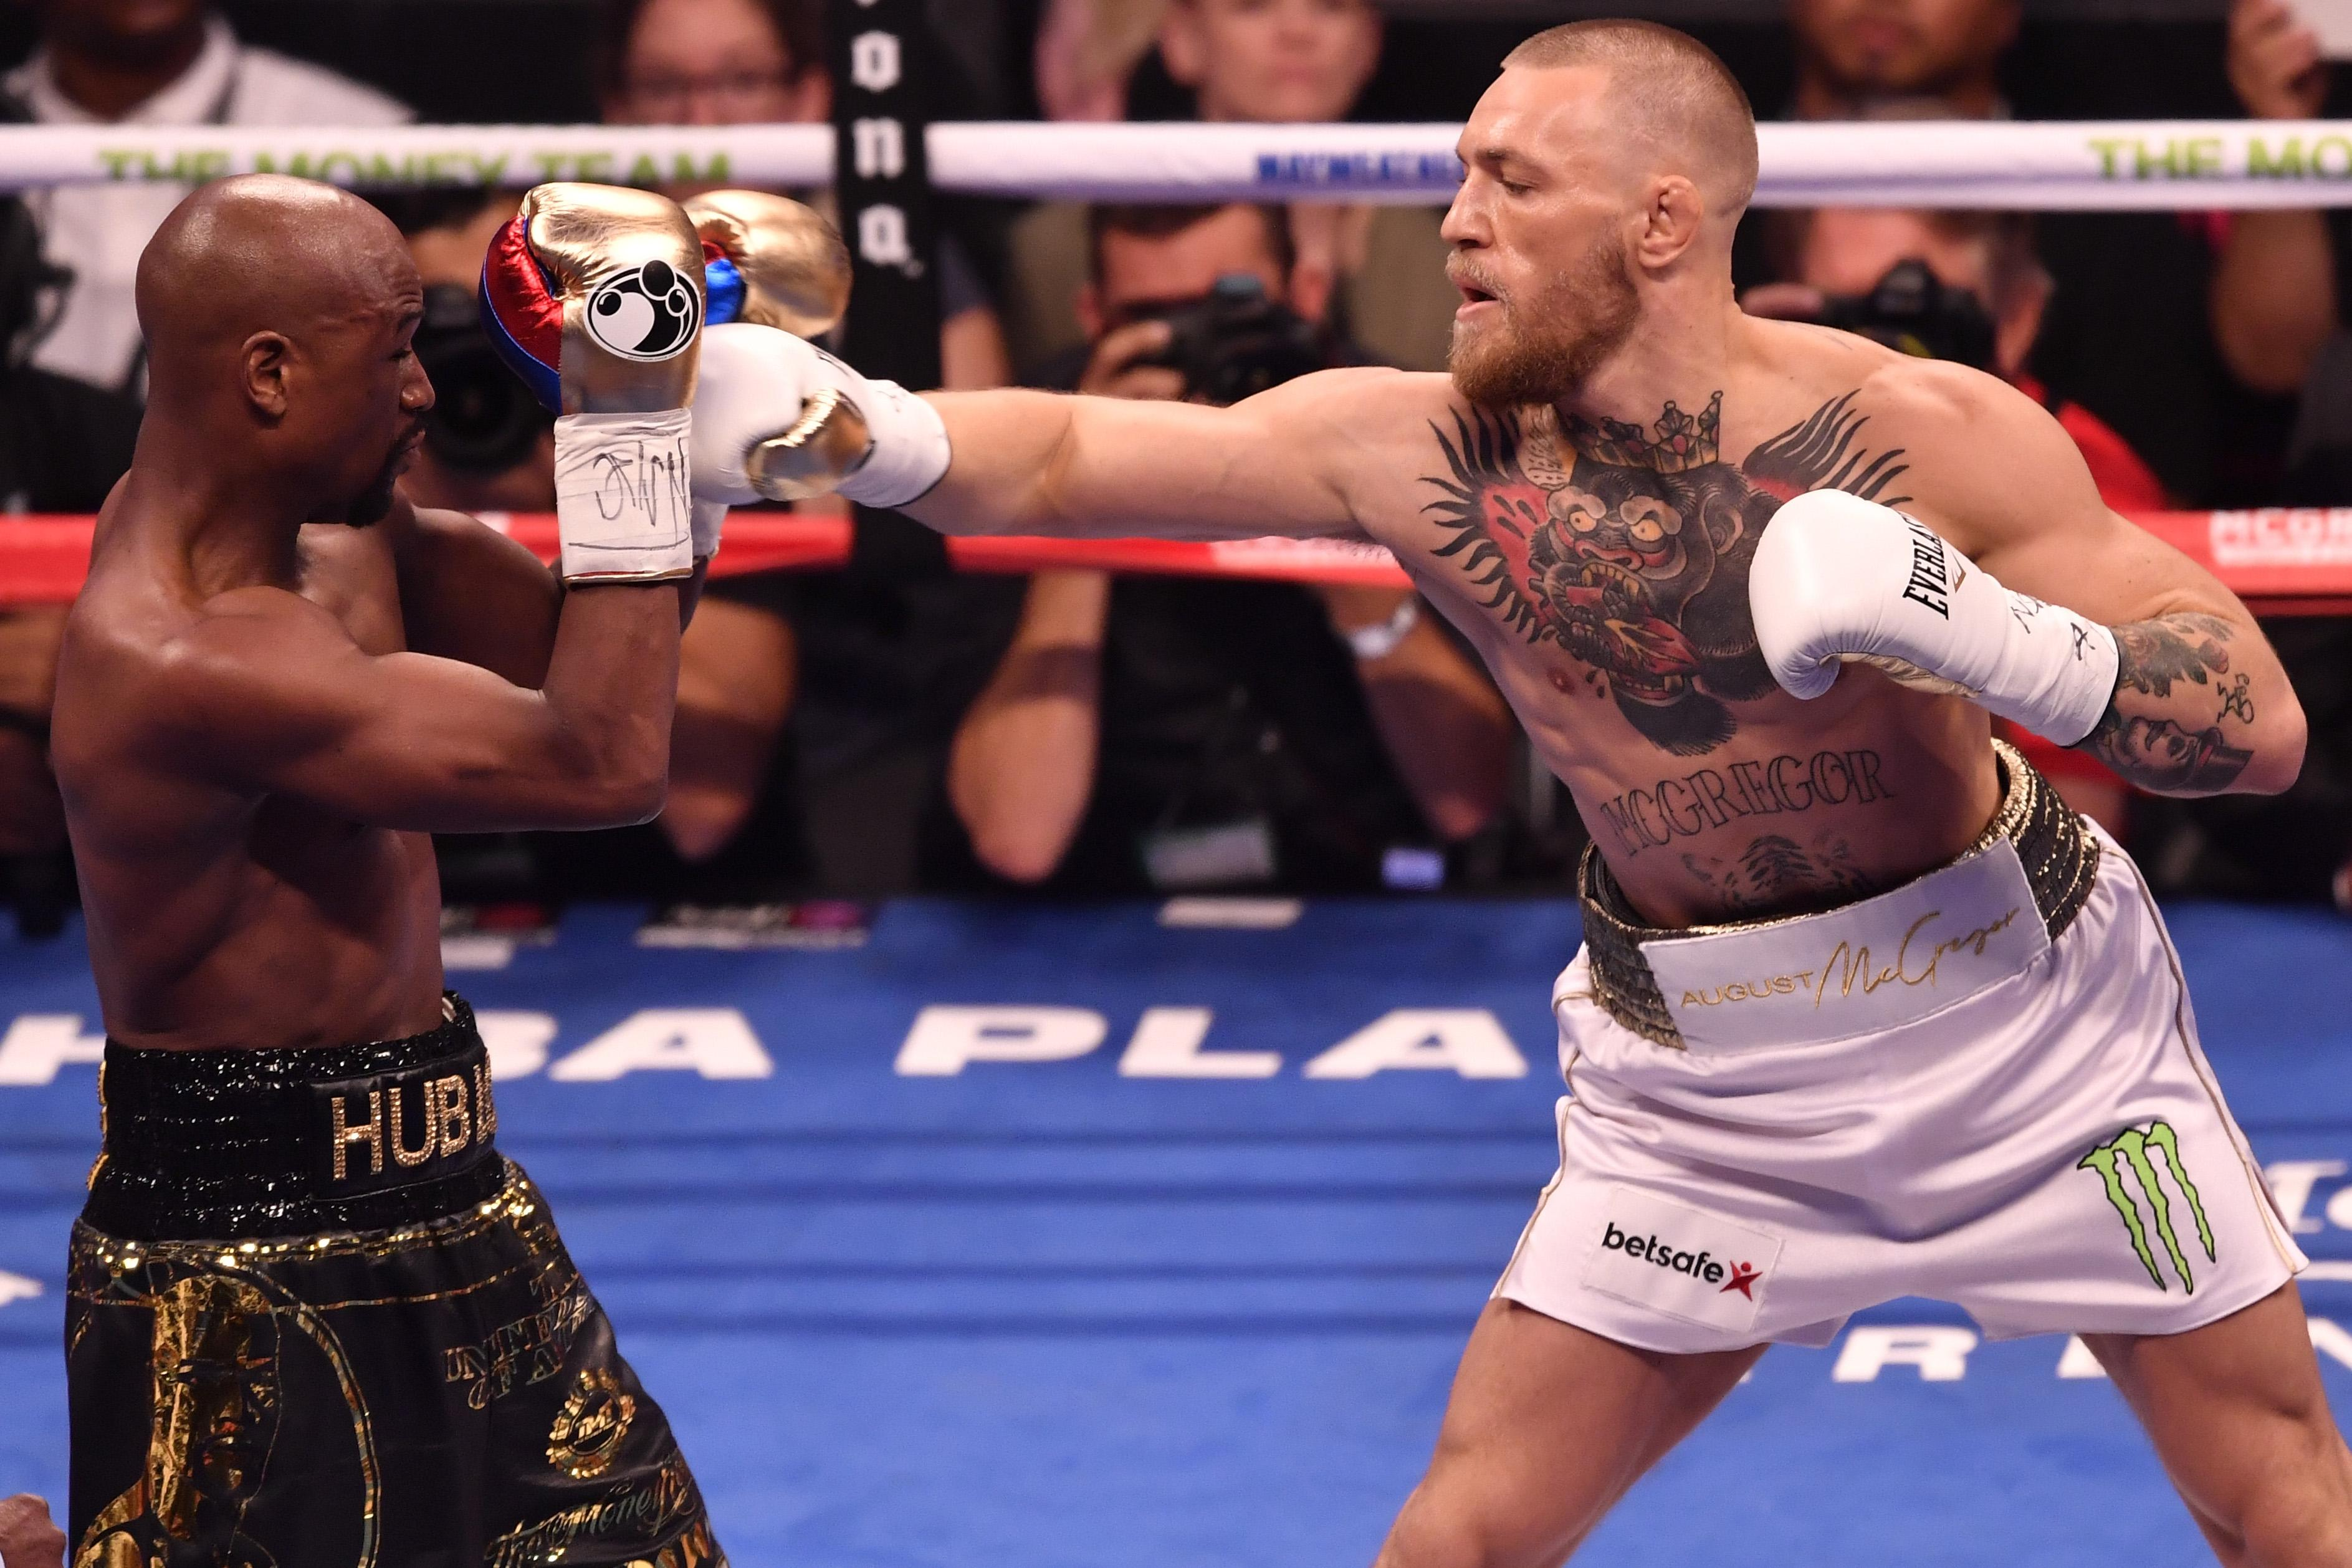 Conor McGregor decided to take on boxing great Floyd Mayweather in a mega fight